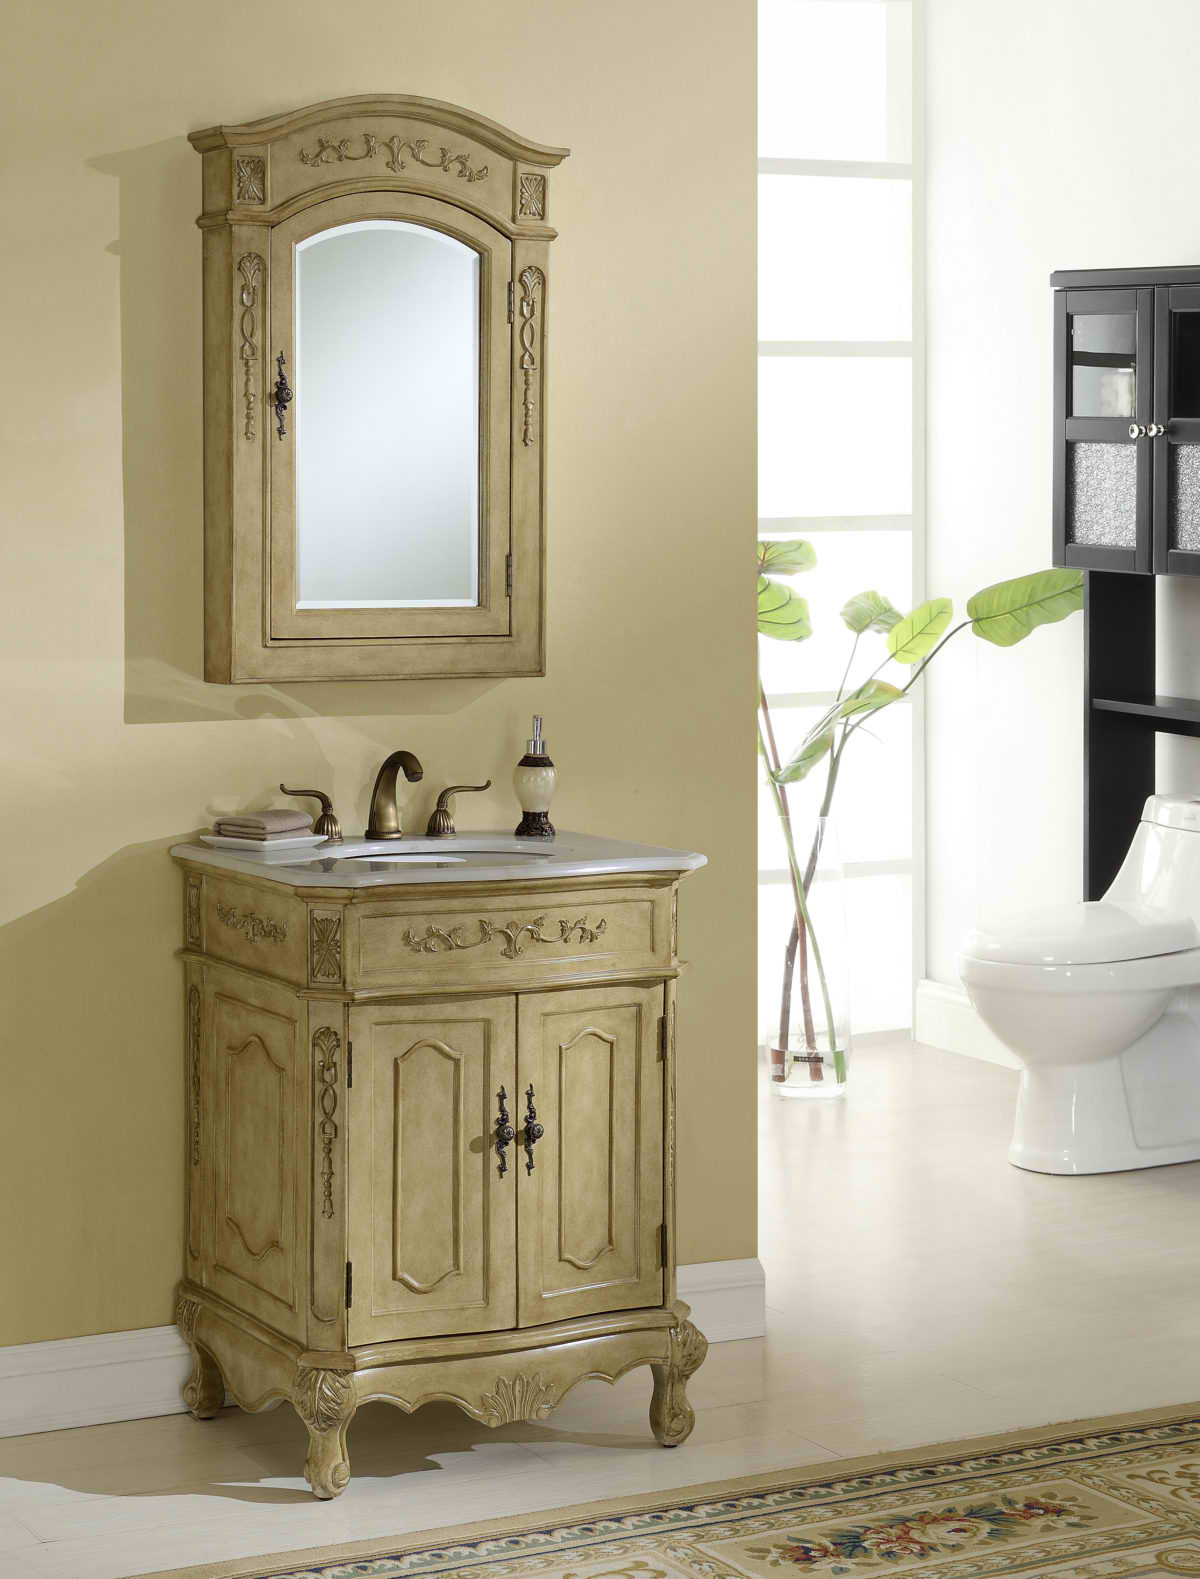 """27"""" Antique Tan Finish Vanity with Mirror, Med Cab, and Linen Cabinet Options"""